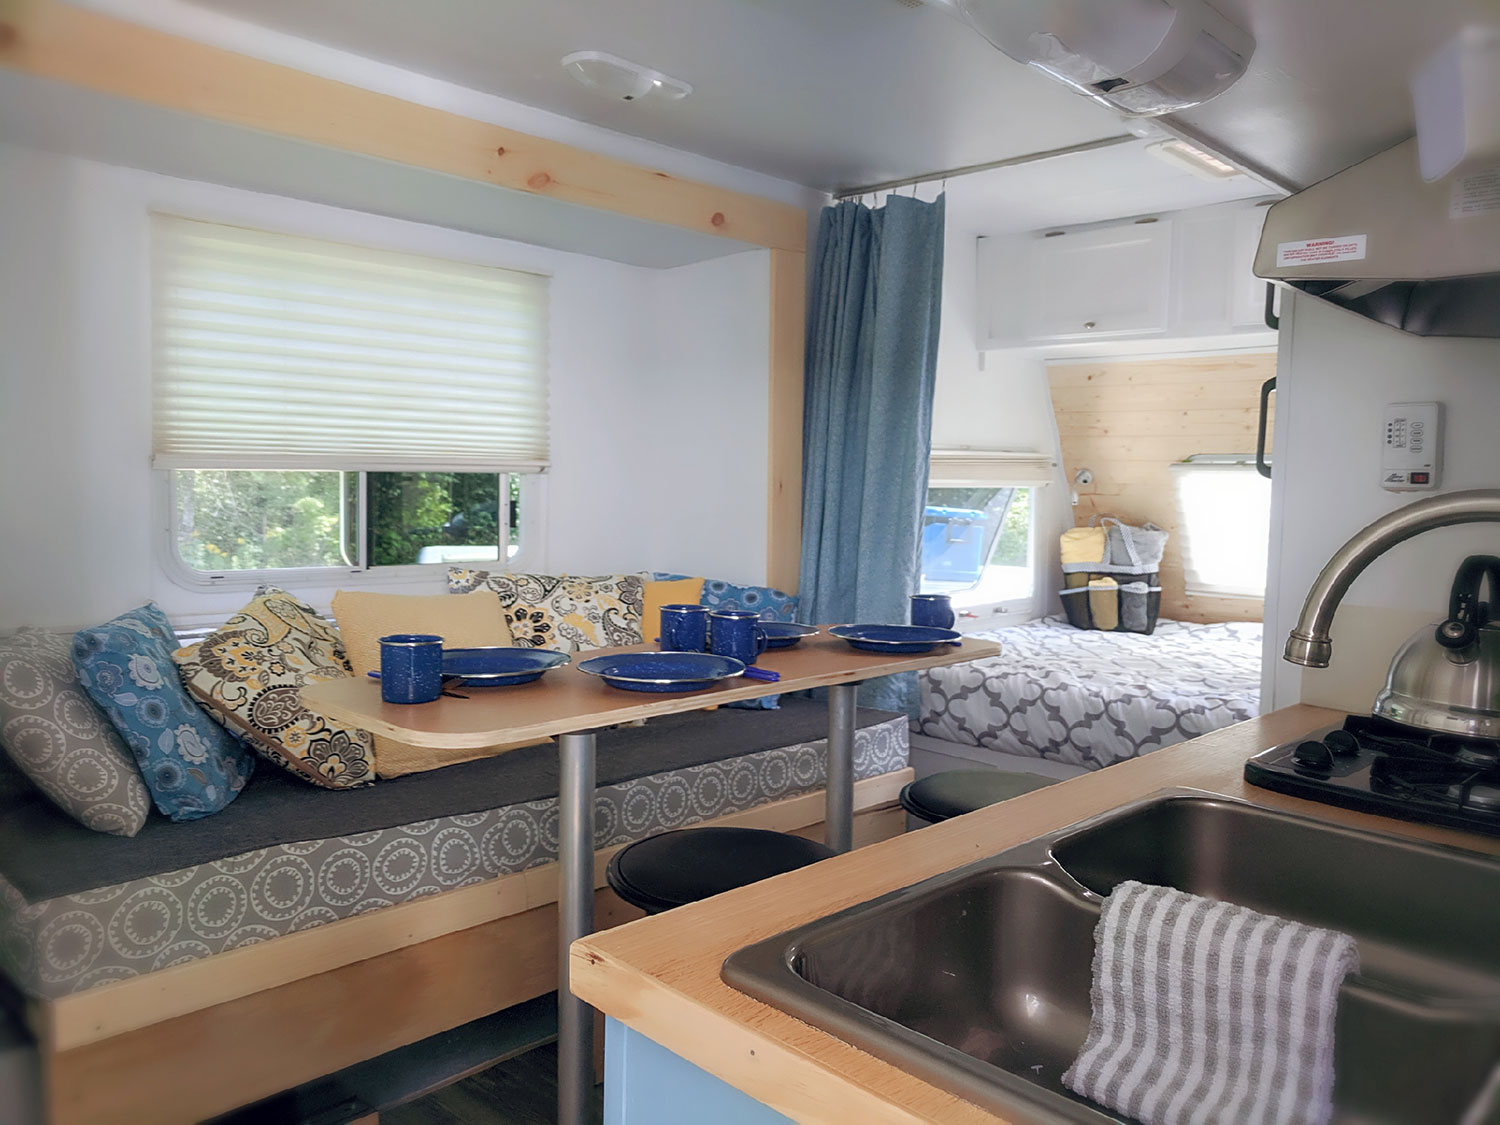 An interior shot of the Huxley, showcasing the dining area that converts into a bed measuring approximately 4½ feet x 6 feet, with a peek of the queen bunk and galley kitchen.